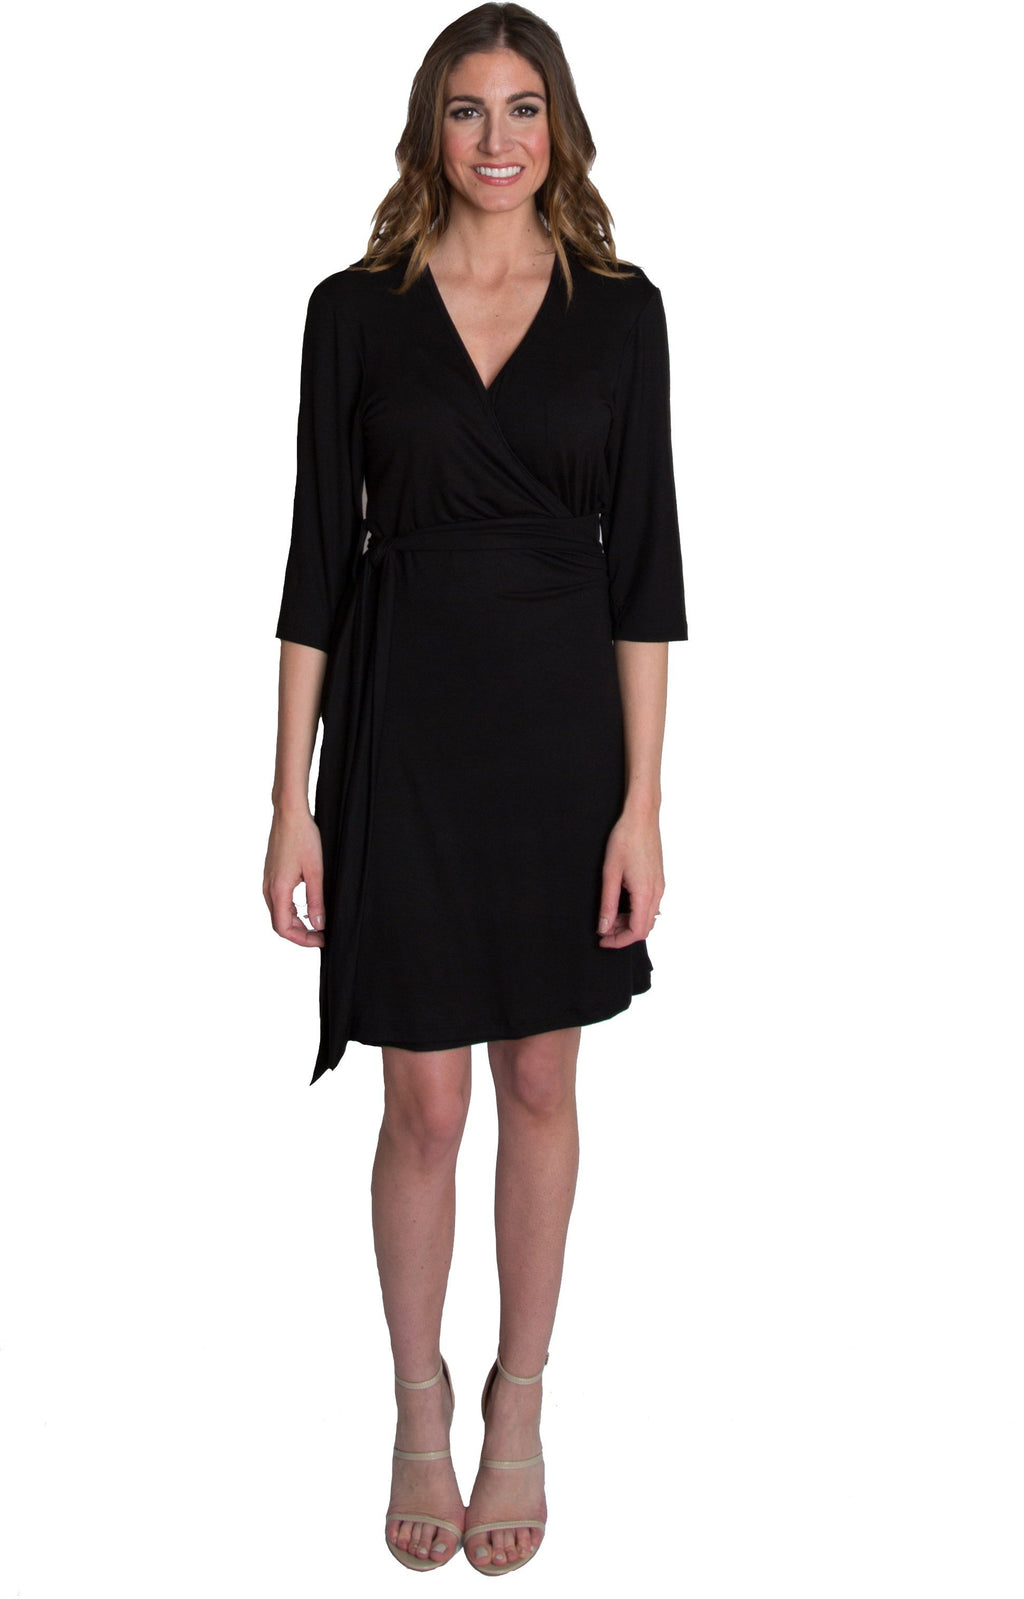 Whimsical Wrap Maternity/Nursing Dress - Black